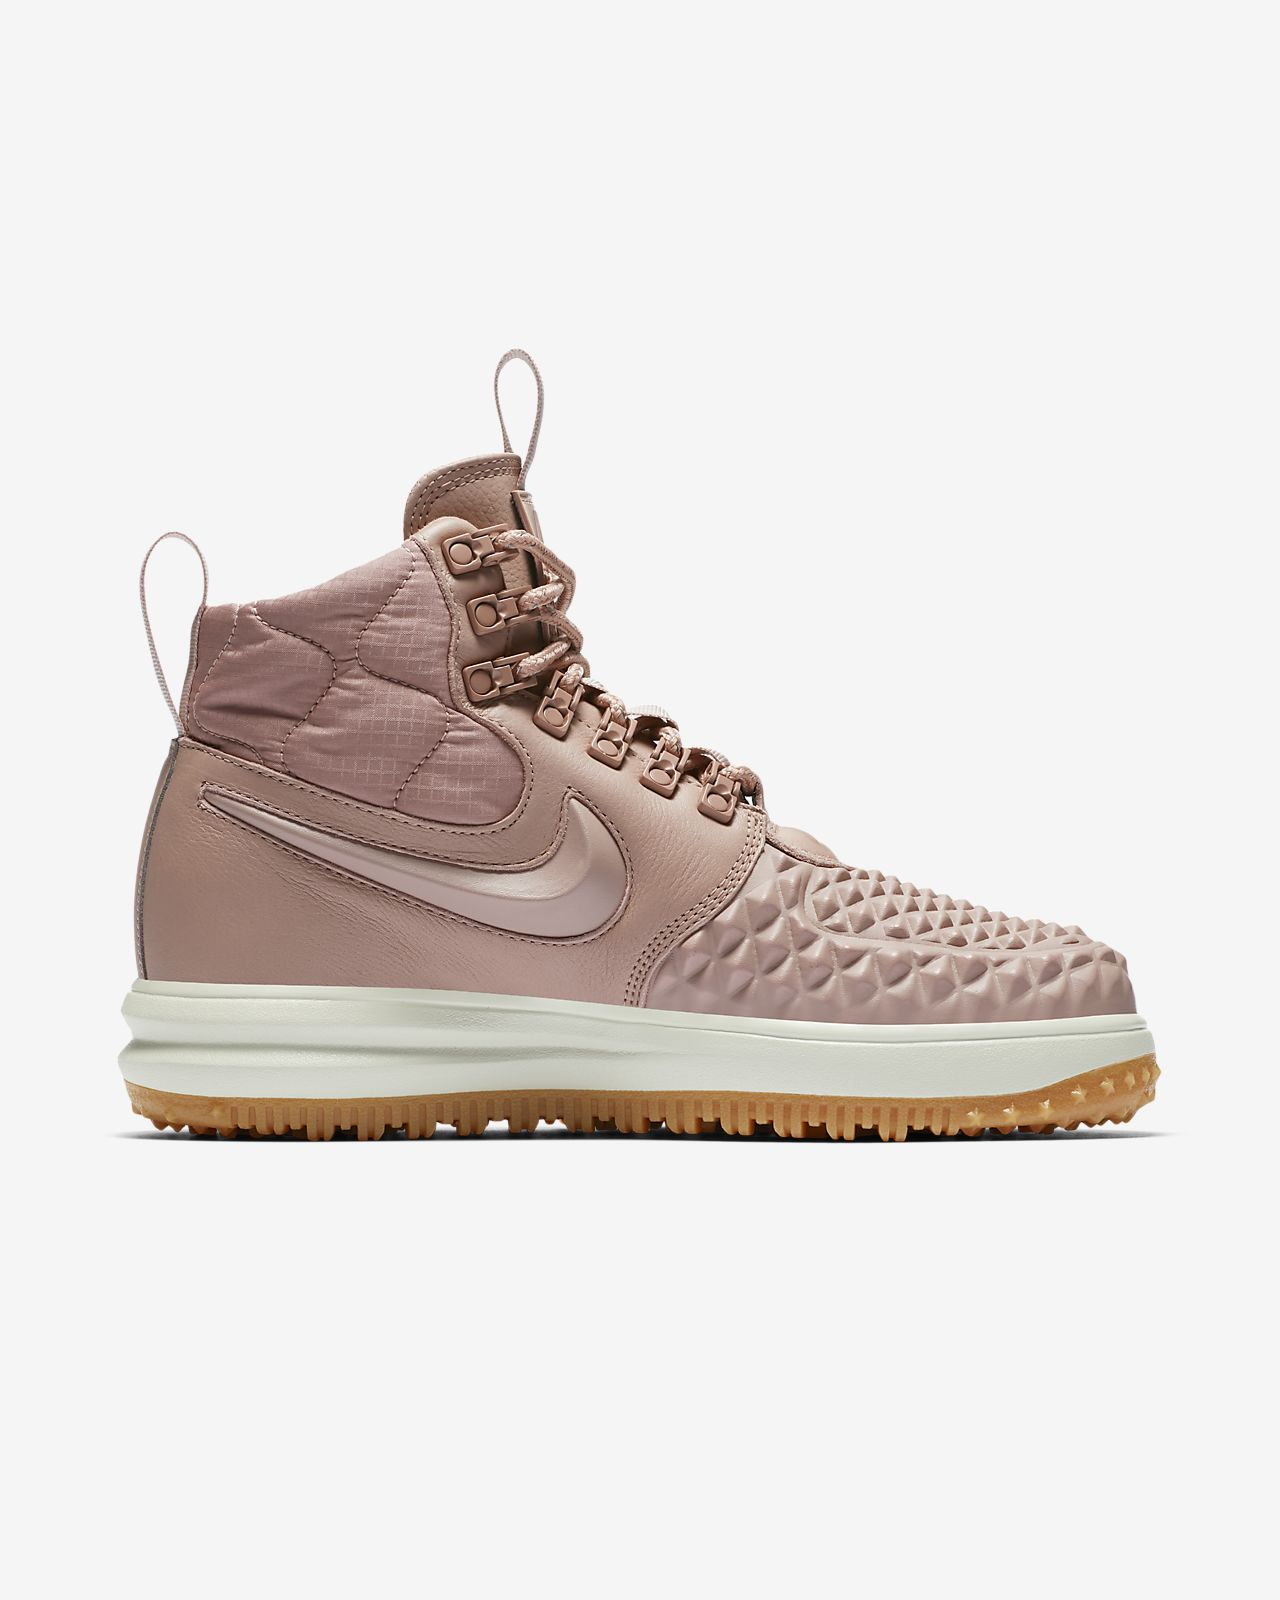 ... Nike Lunar Force 1 Duckboot '17 Women's Boot